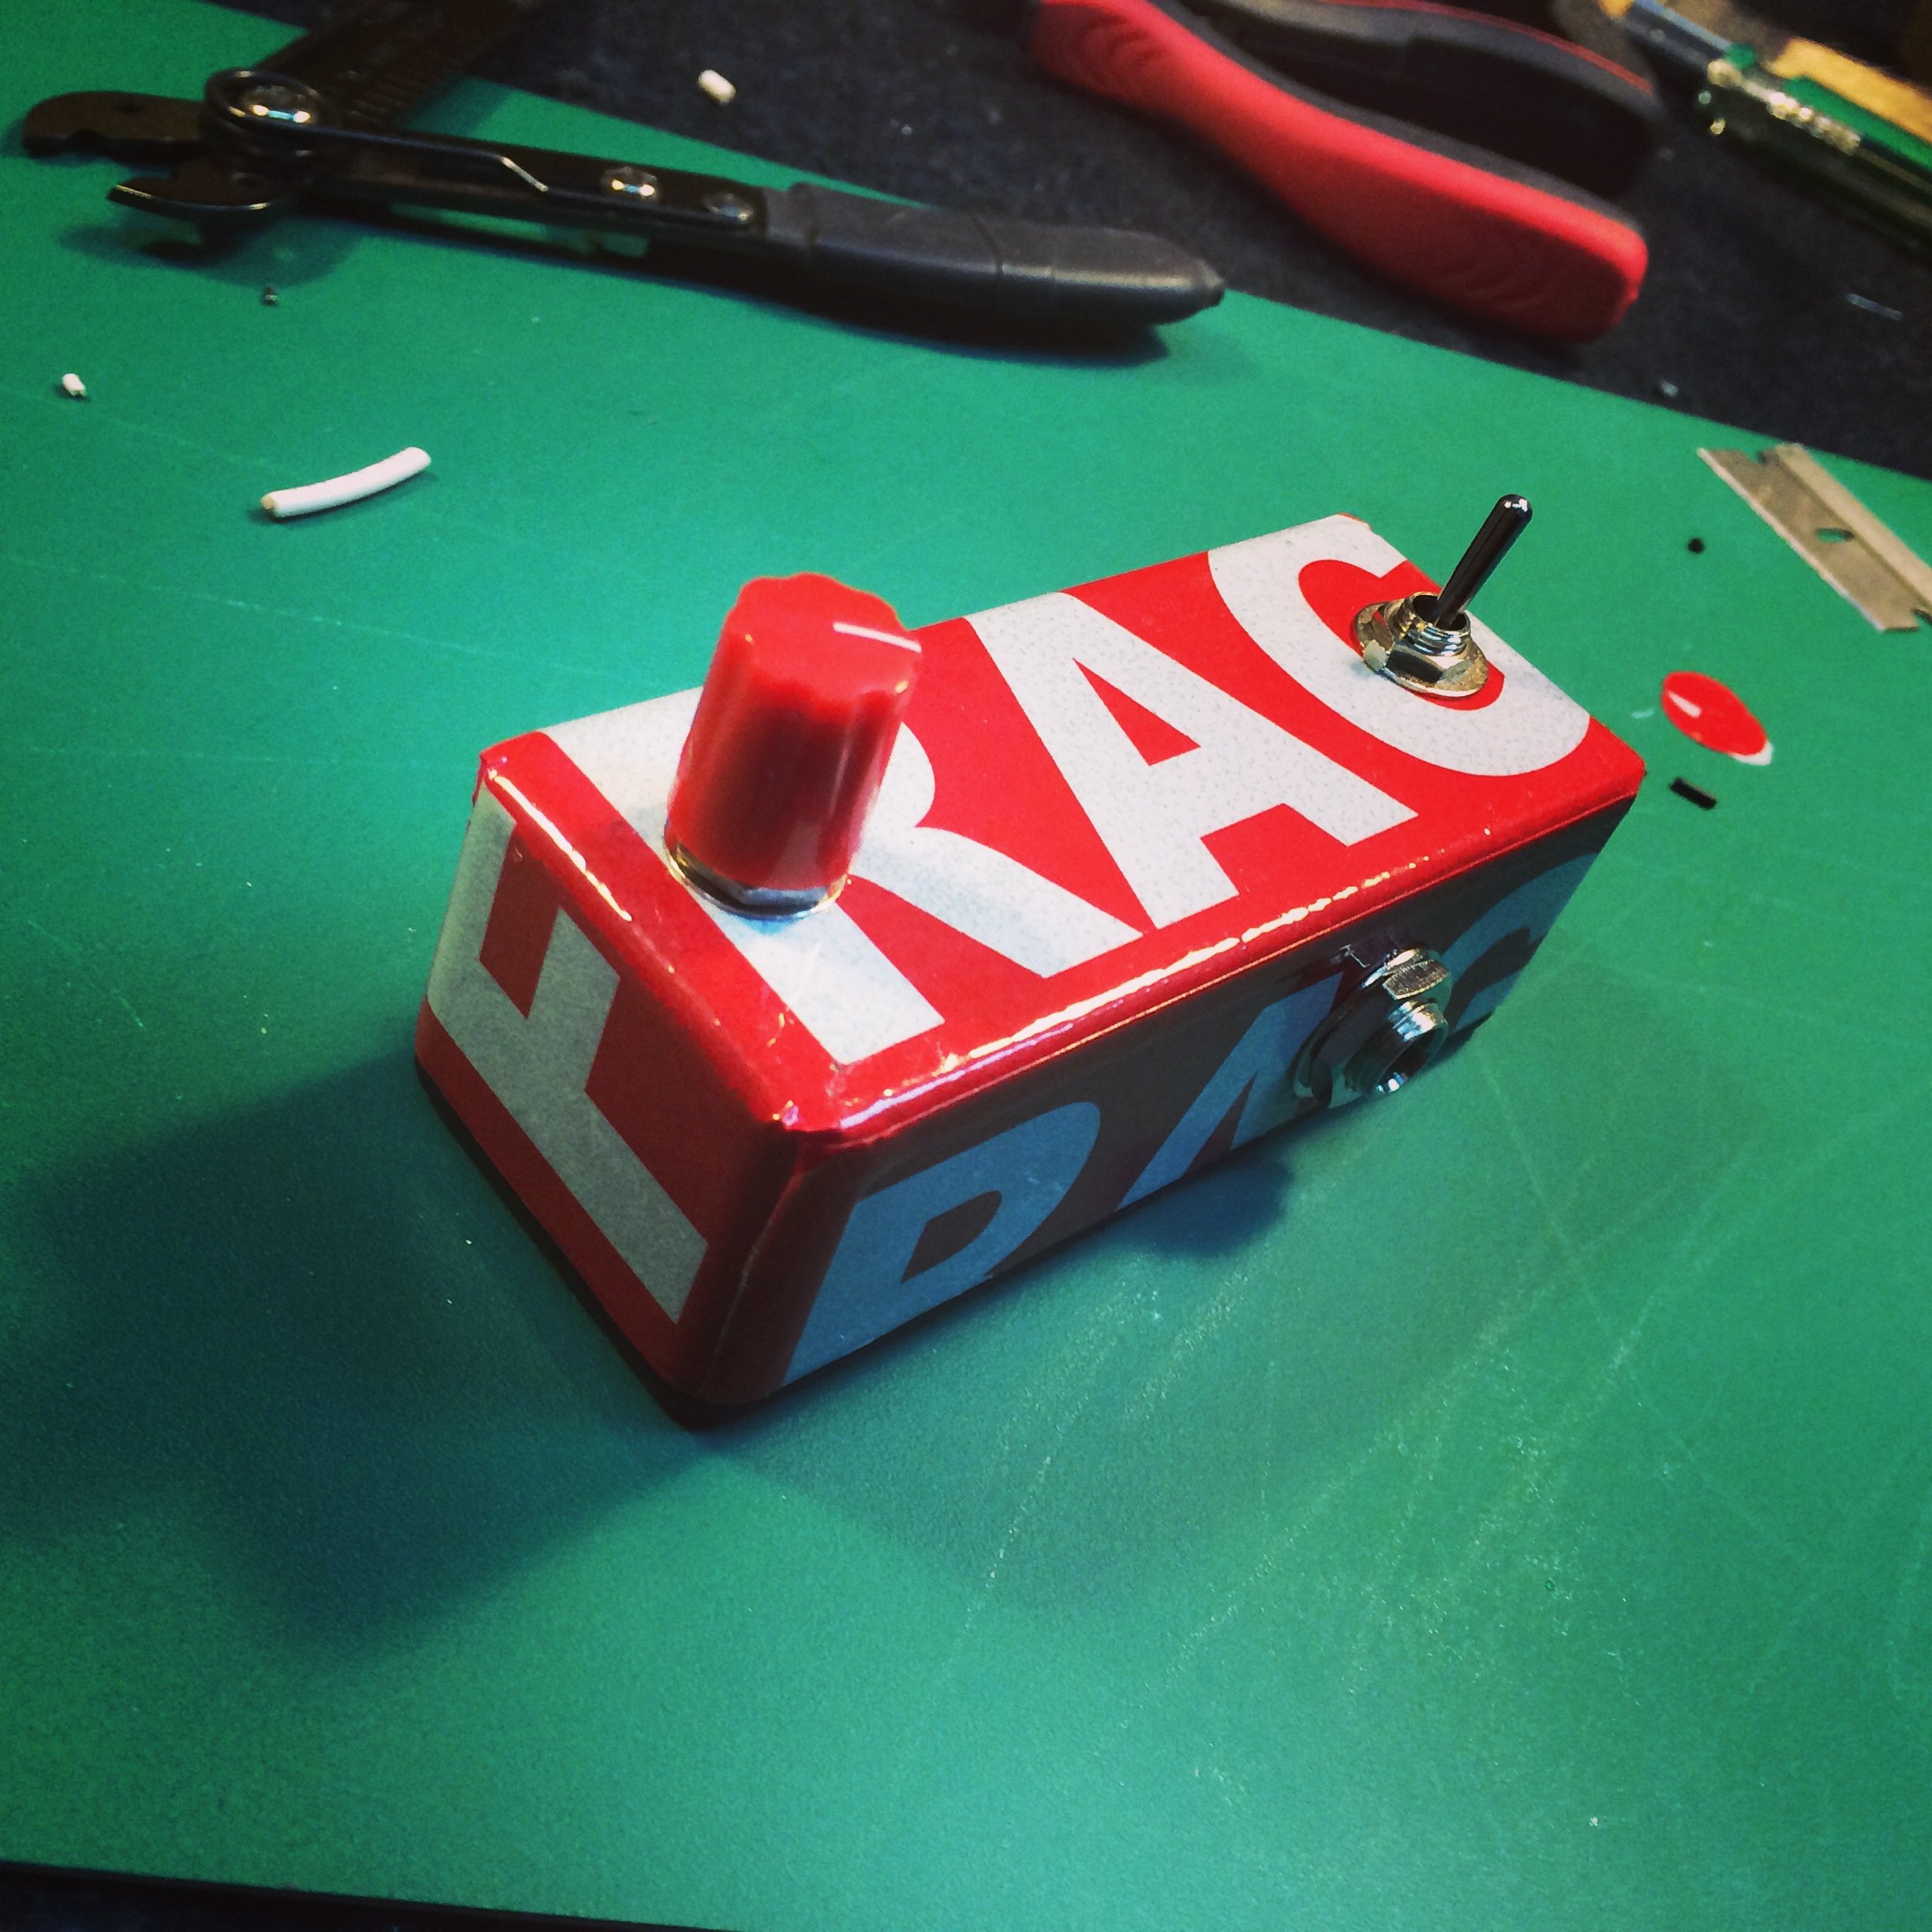 Custom made mid-boost pedal for Khalil